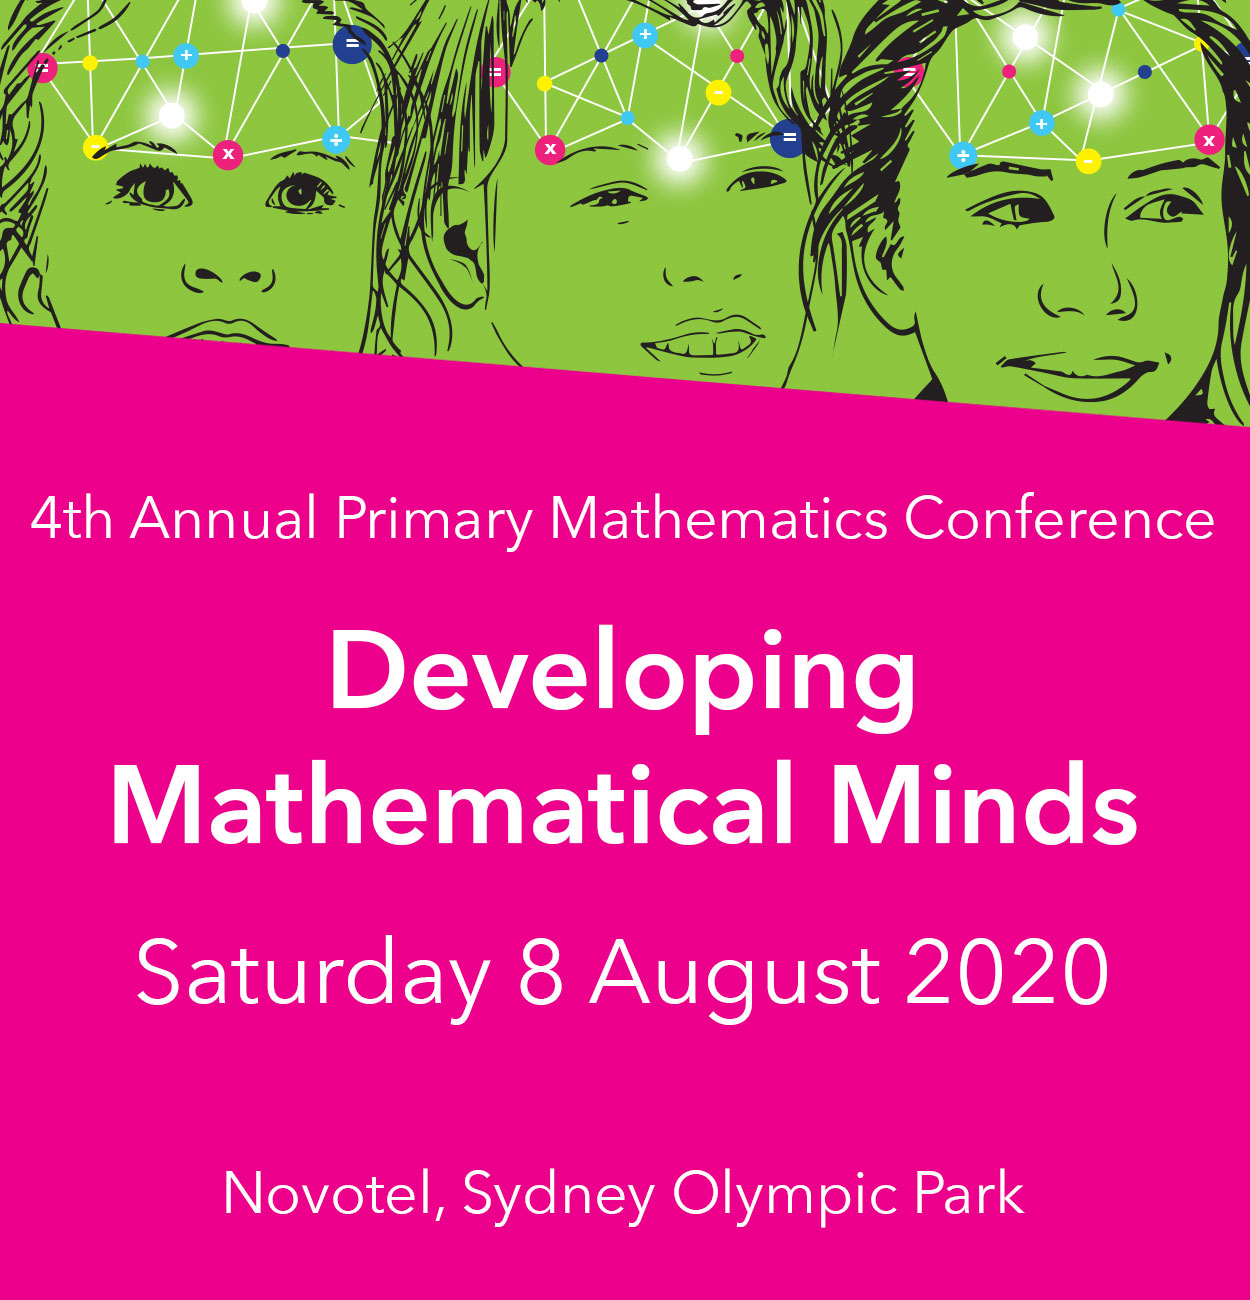 4th Annual Primary Mathematics Conference | Developing Mathematical Minds | Saturday 8 August 2020 | Novotel, Sydney Olympic Park